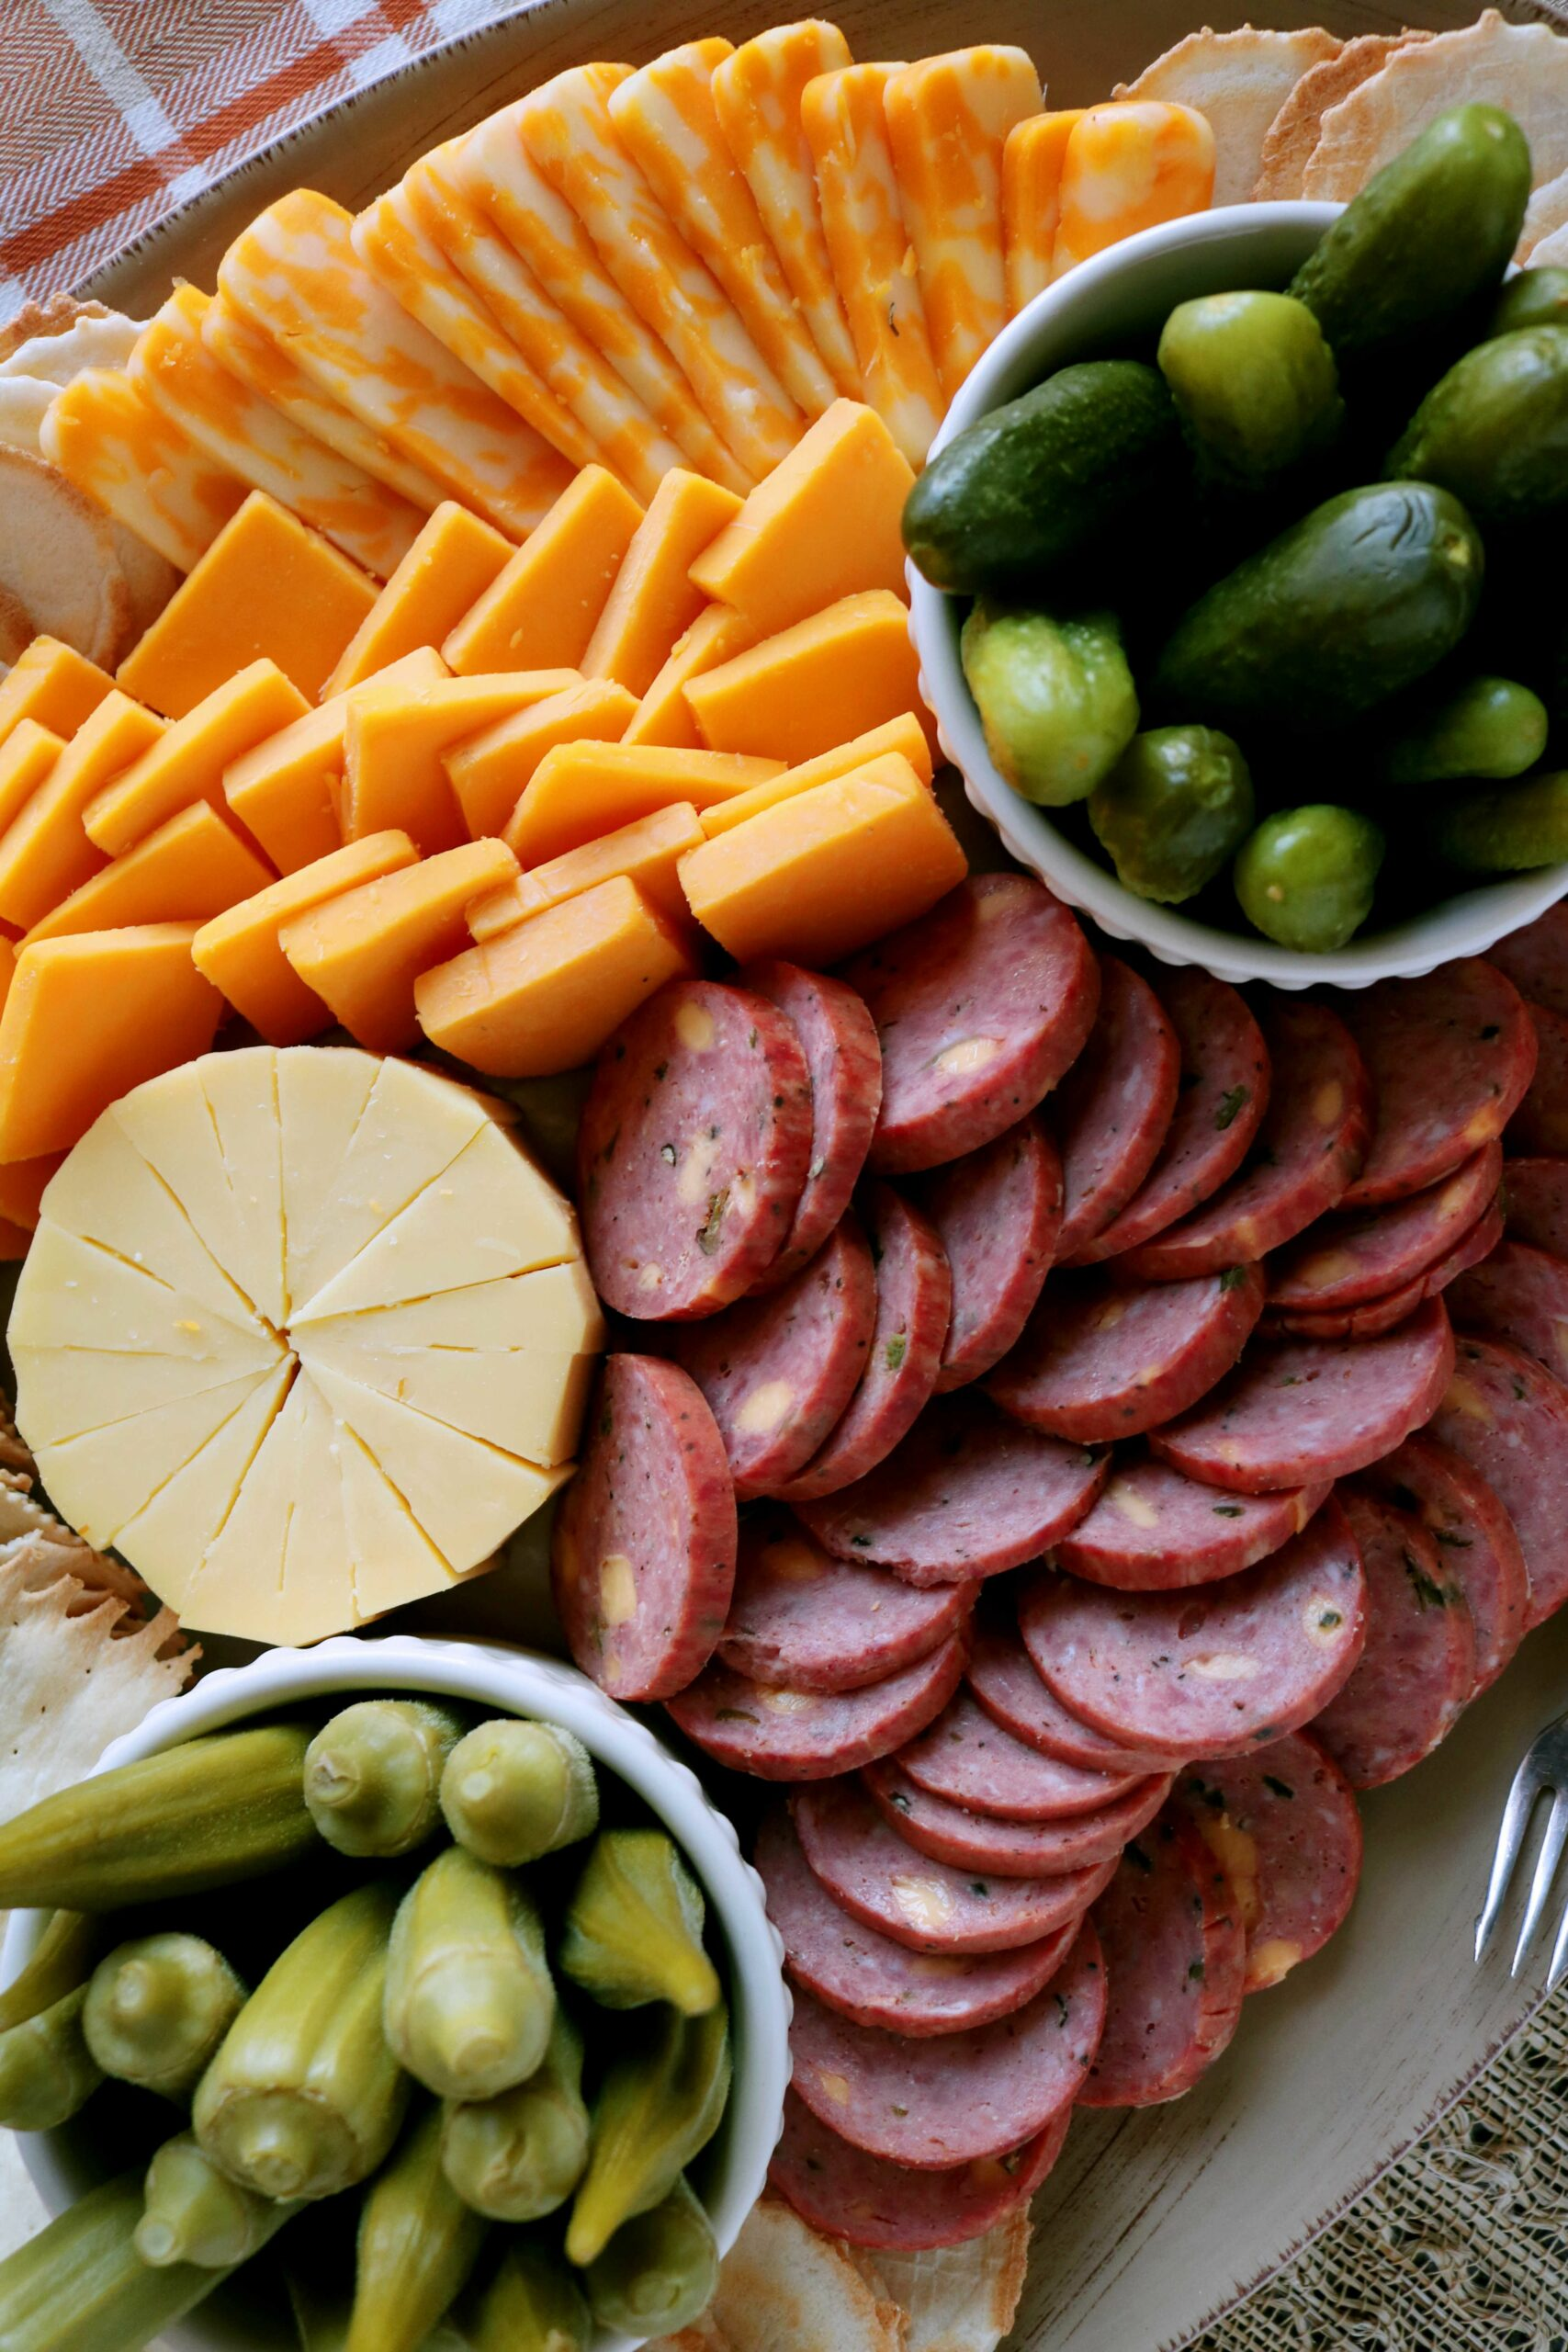 Cheese Platter with Summer Sausage - Recipes Using Summer Sausage